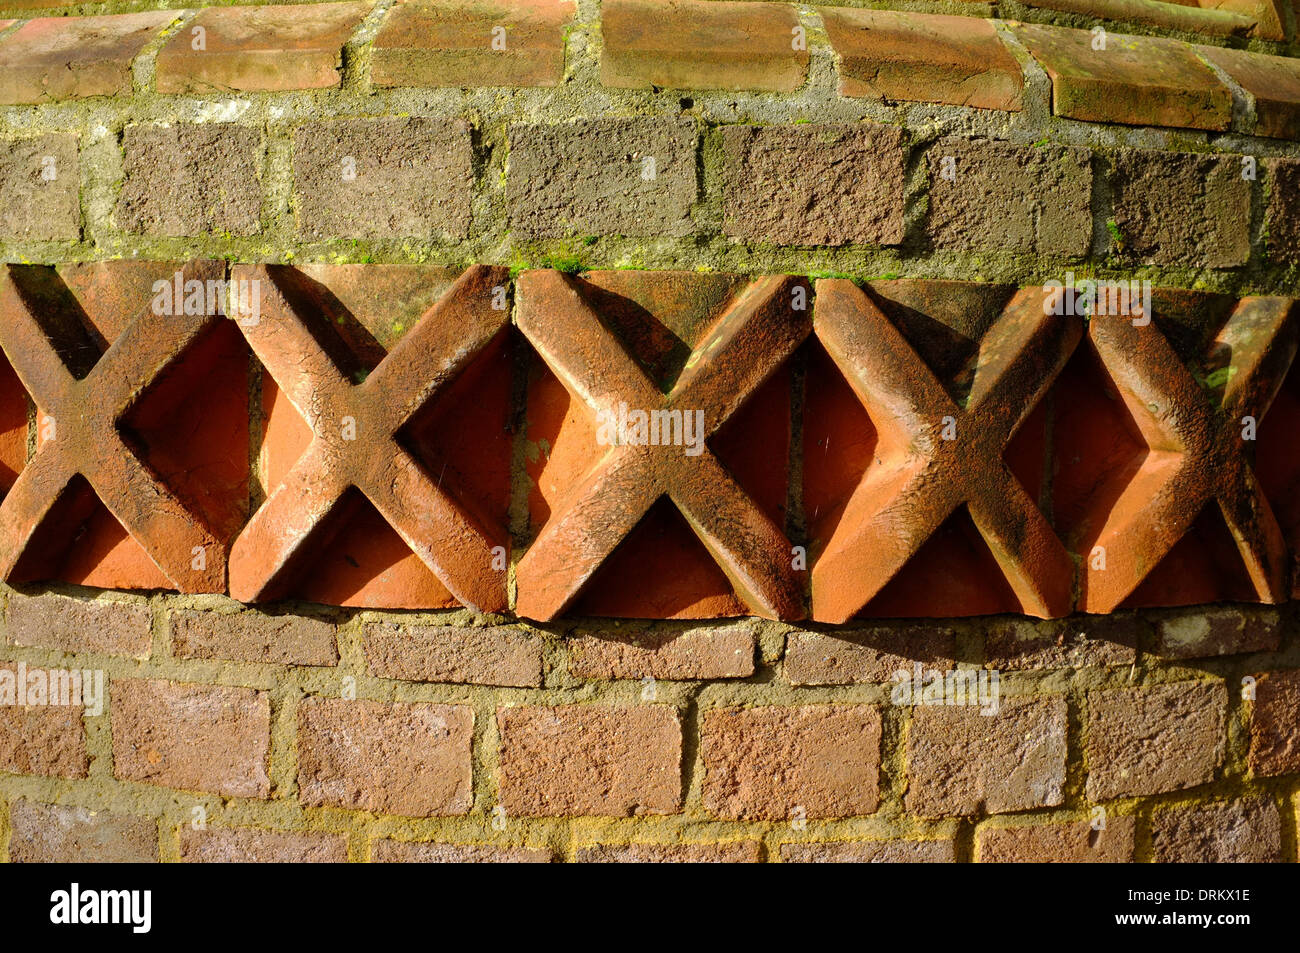 Terracotta decorative tiles within a brick wall in Wardown Park, Luton - Stock Image